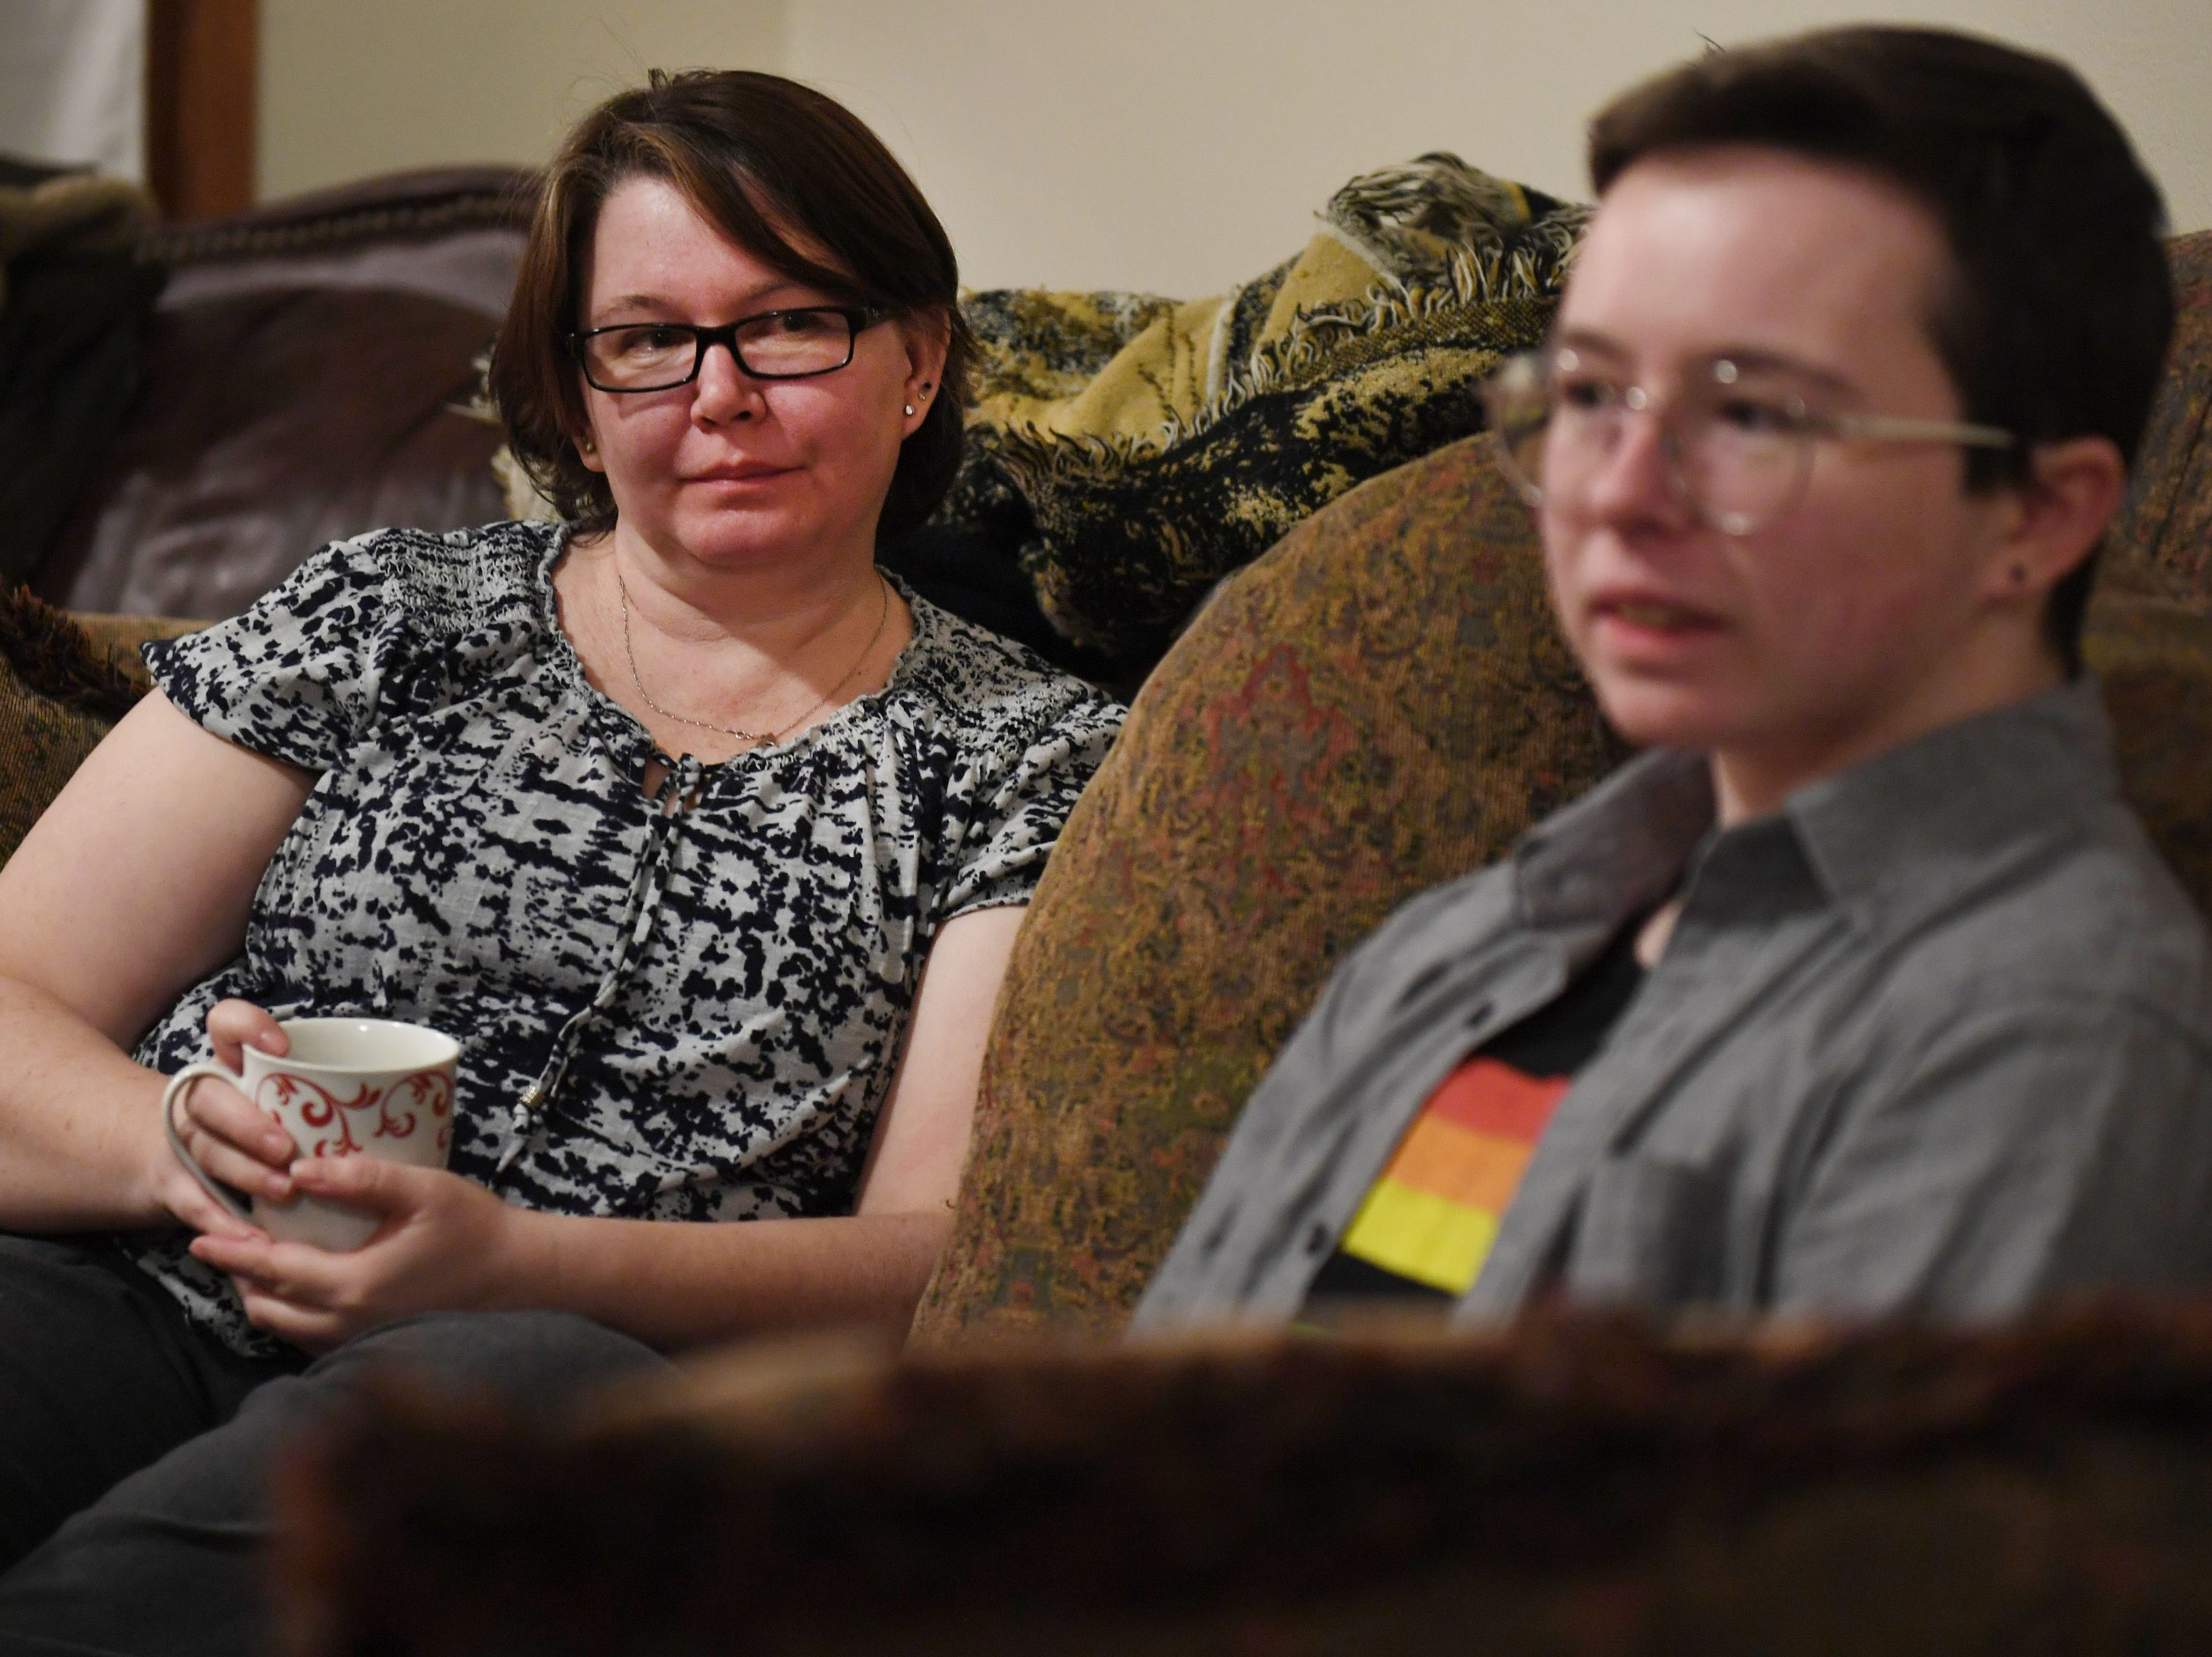 Oliver Dickman and his mom, Jessica Martin, talk on Monday, Feb. 25, in Yankton about Oliver's experience transitioning.